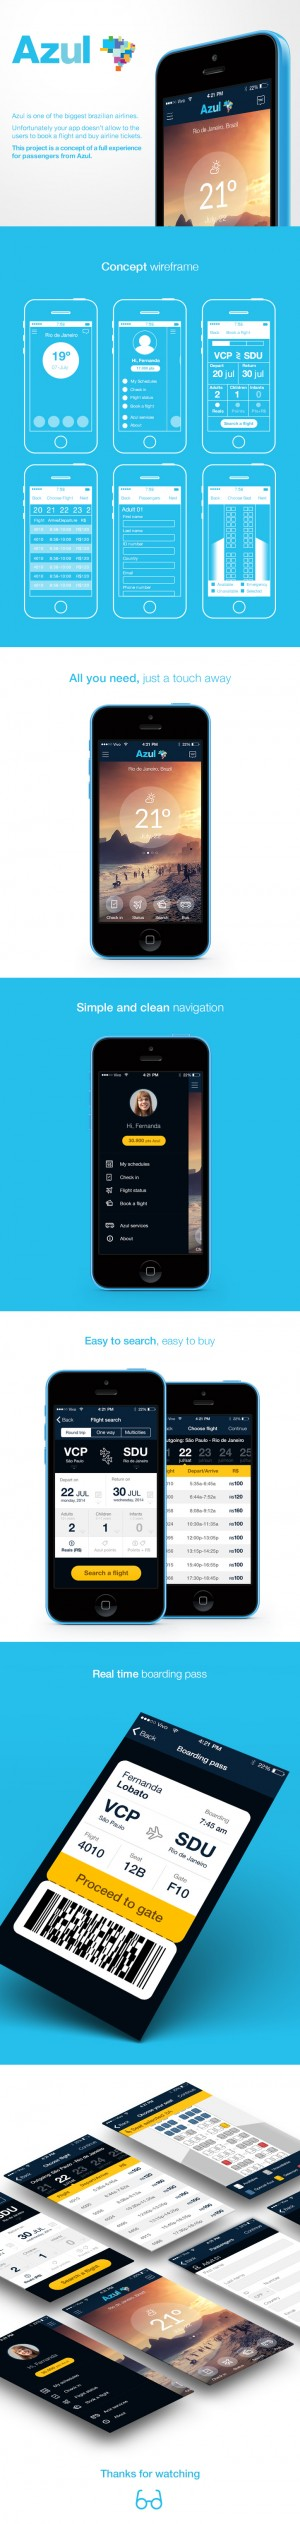 Azul Airlines – Iphone App